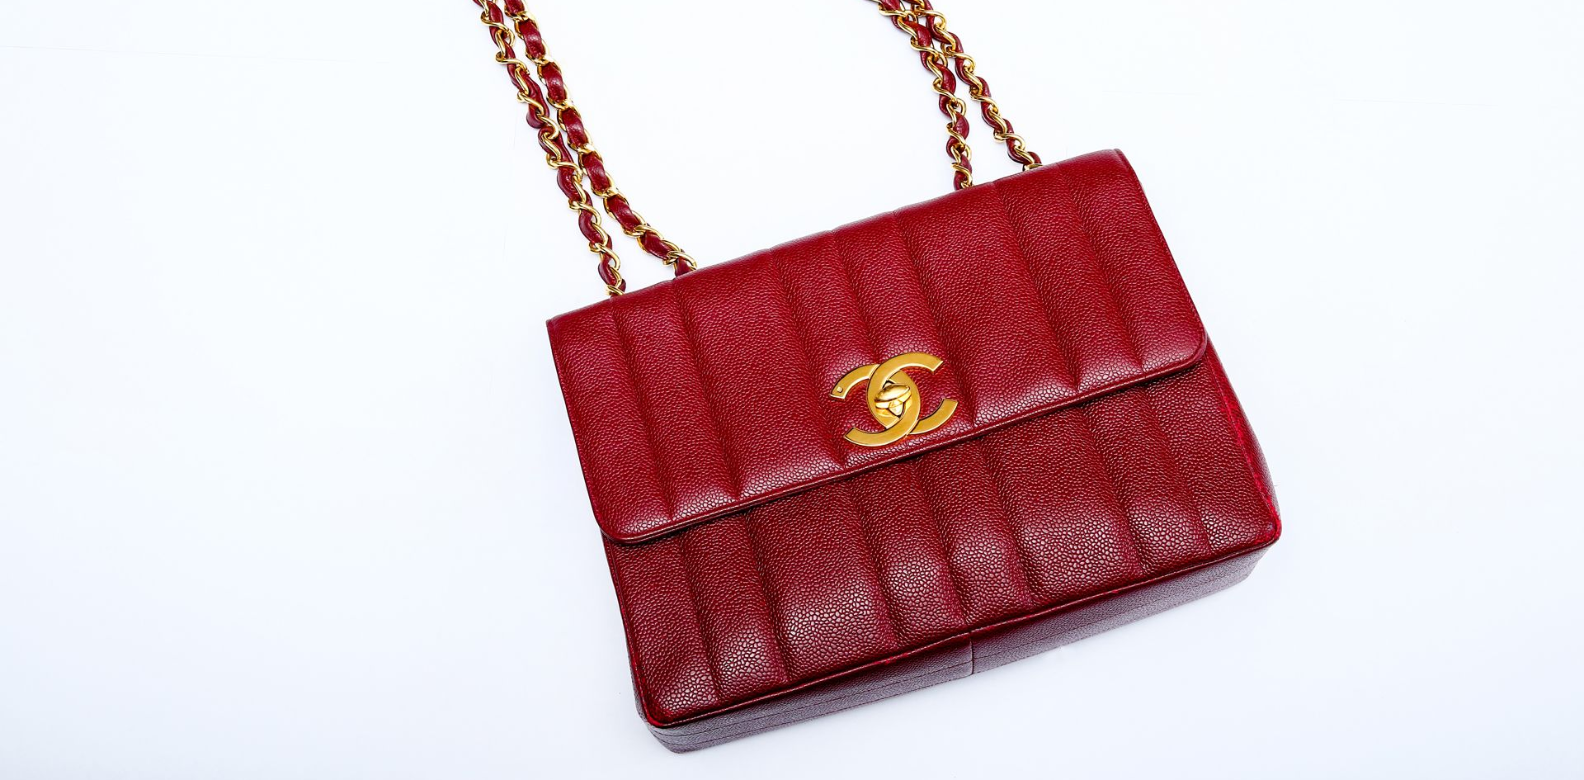 """A vintage bag such as this classic Chanel has a distinct character with its own little history. In addition, I find that most pieces in the past have better craftsmanship"""